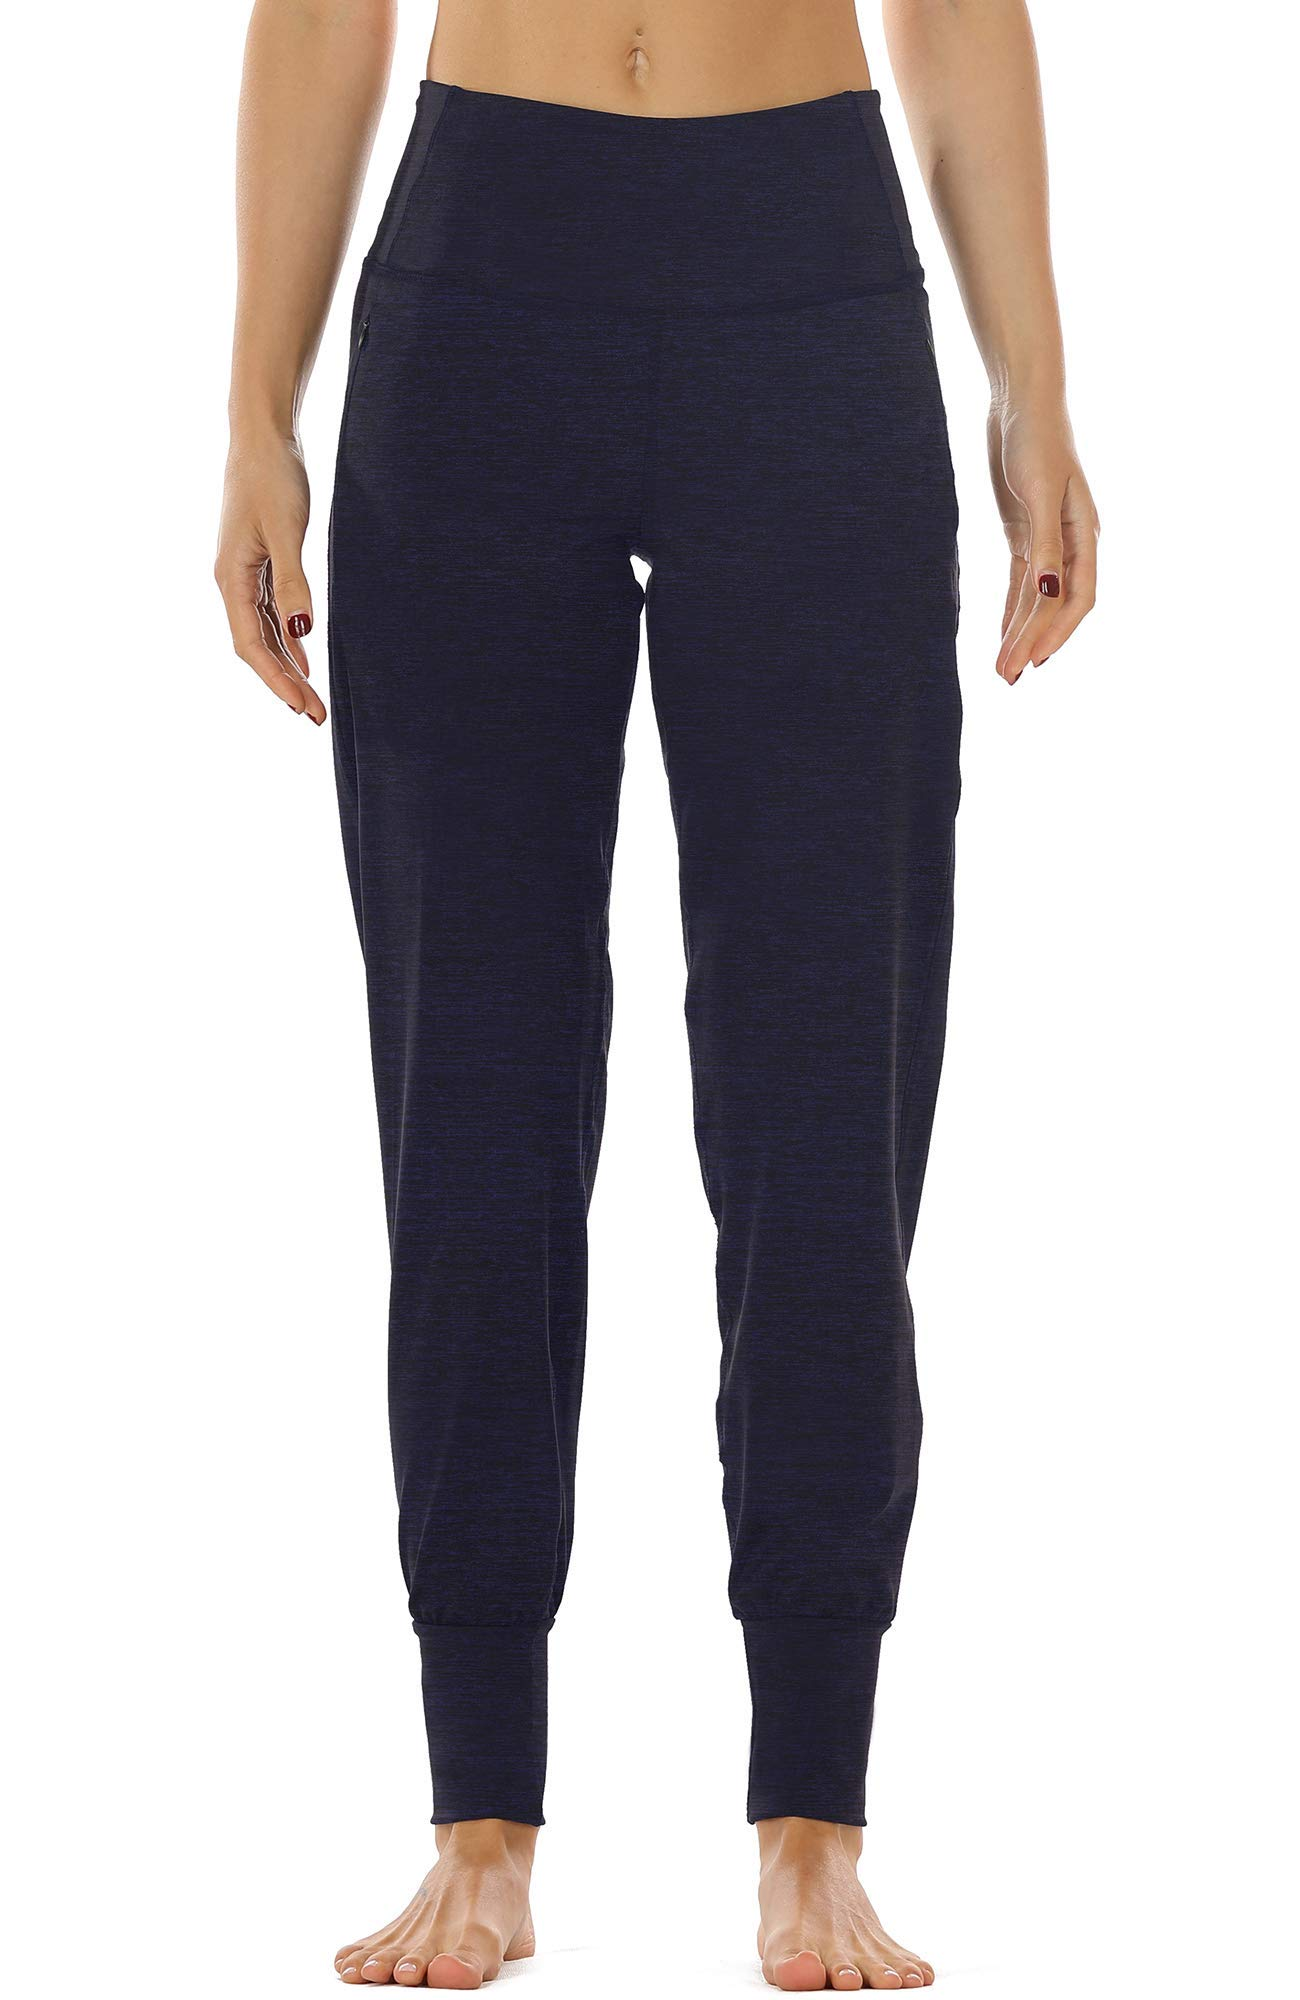 icyzone Workout Joggers Pants for Women - High Waisted Exercise Athletic Running Leggings with Pockets